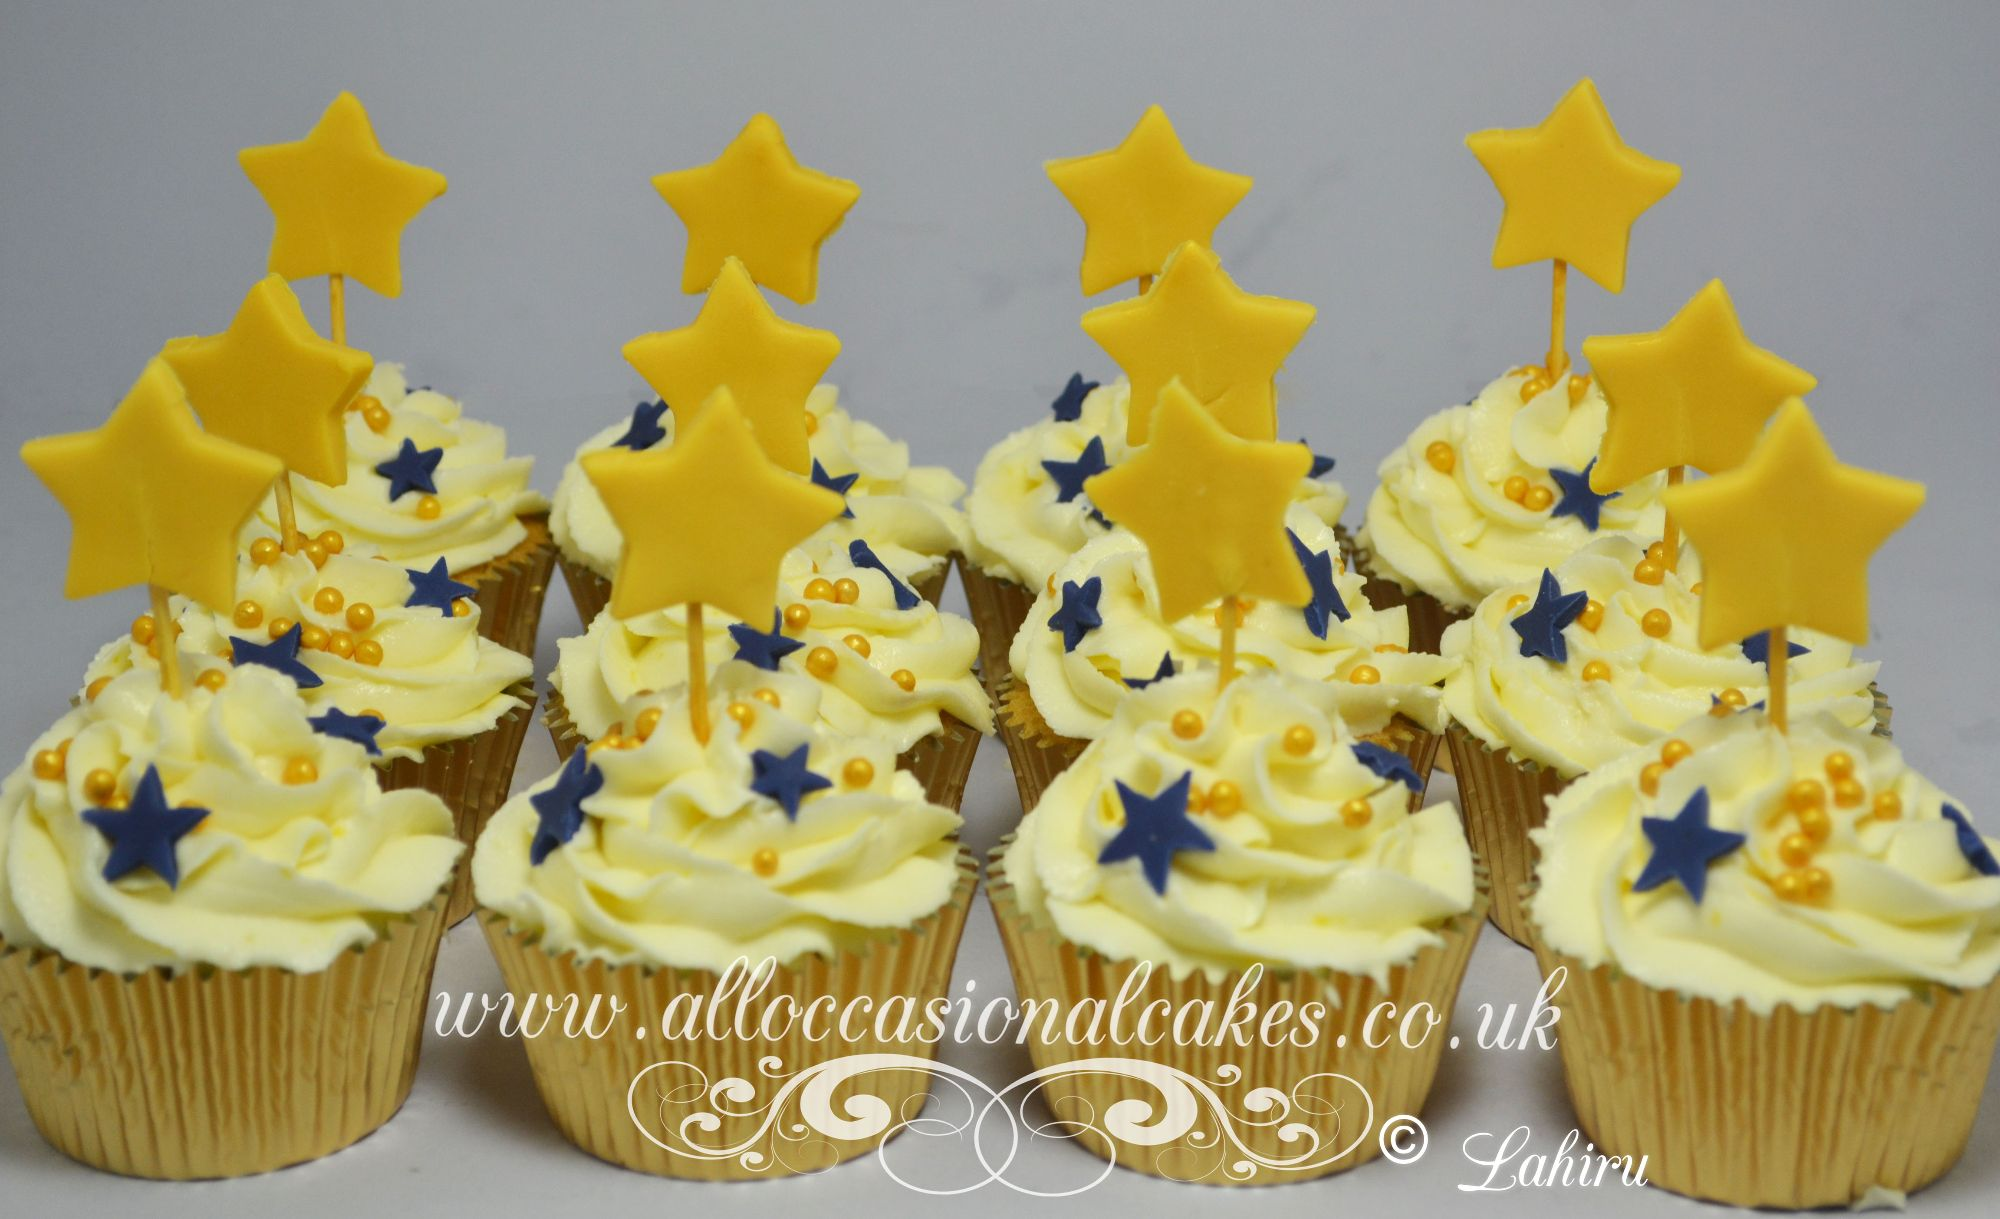 cupcakes with stars